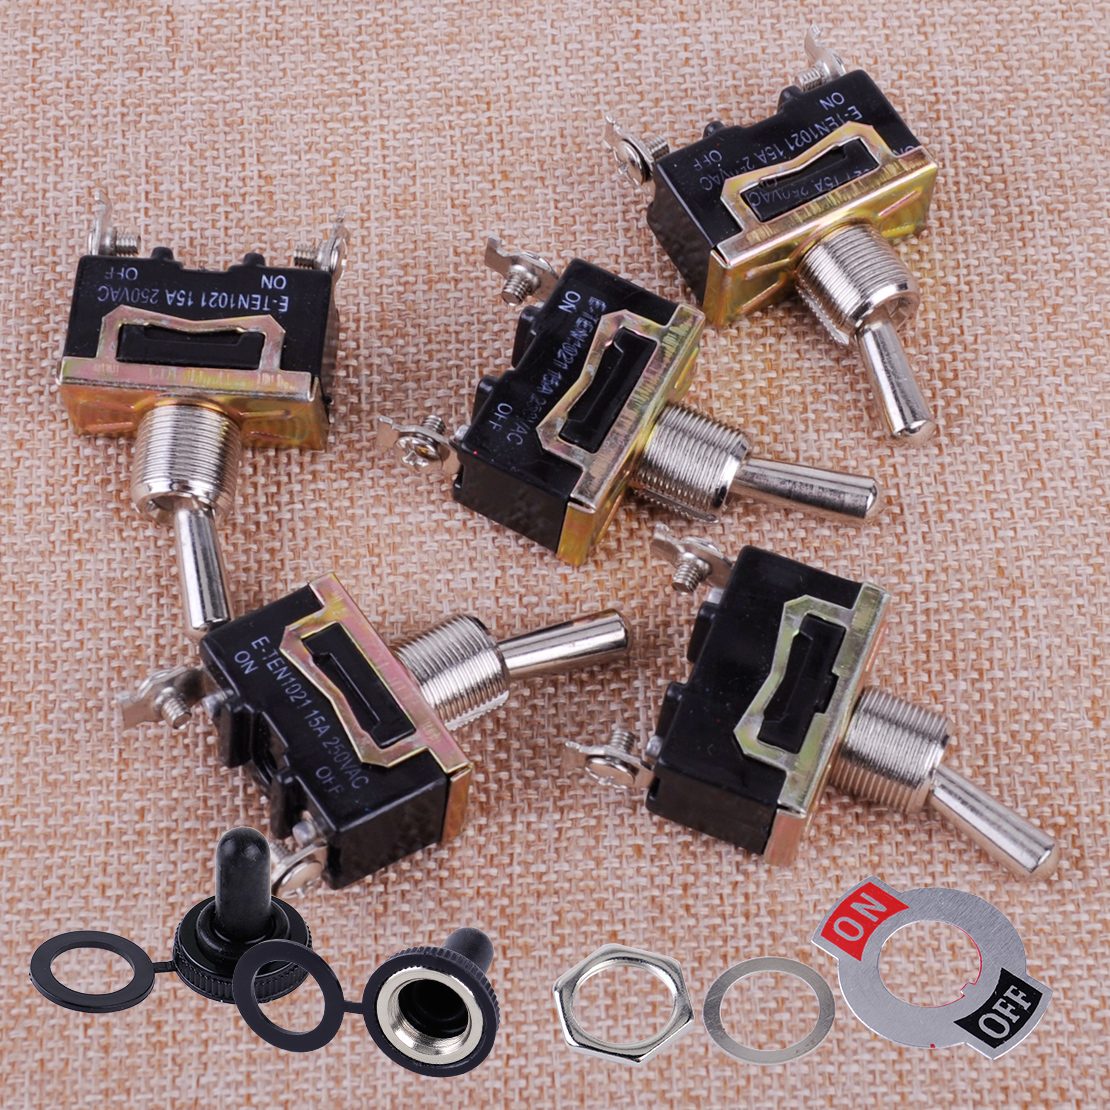 CITALL 5pcs SPST ON/OFF 2Pin Heavy Duty Car Boat Yacht Tractor 15A 250V Rocker Toggle Switch with Waterproof Boot